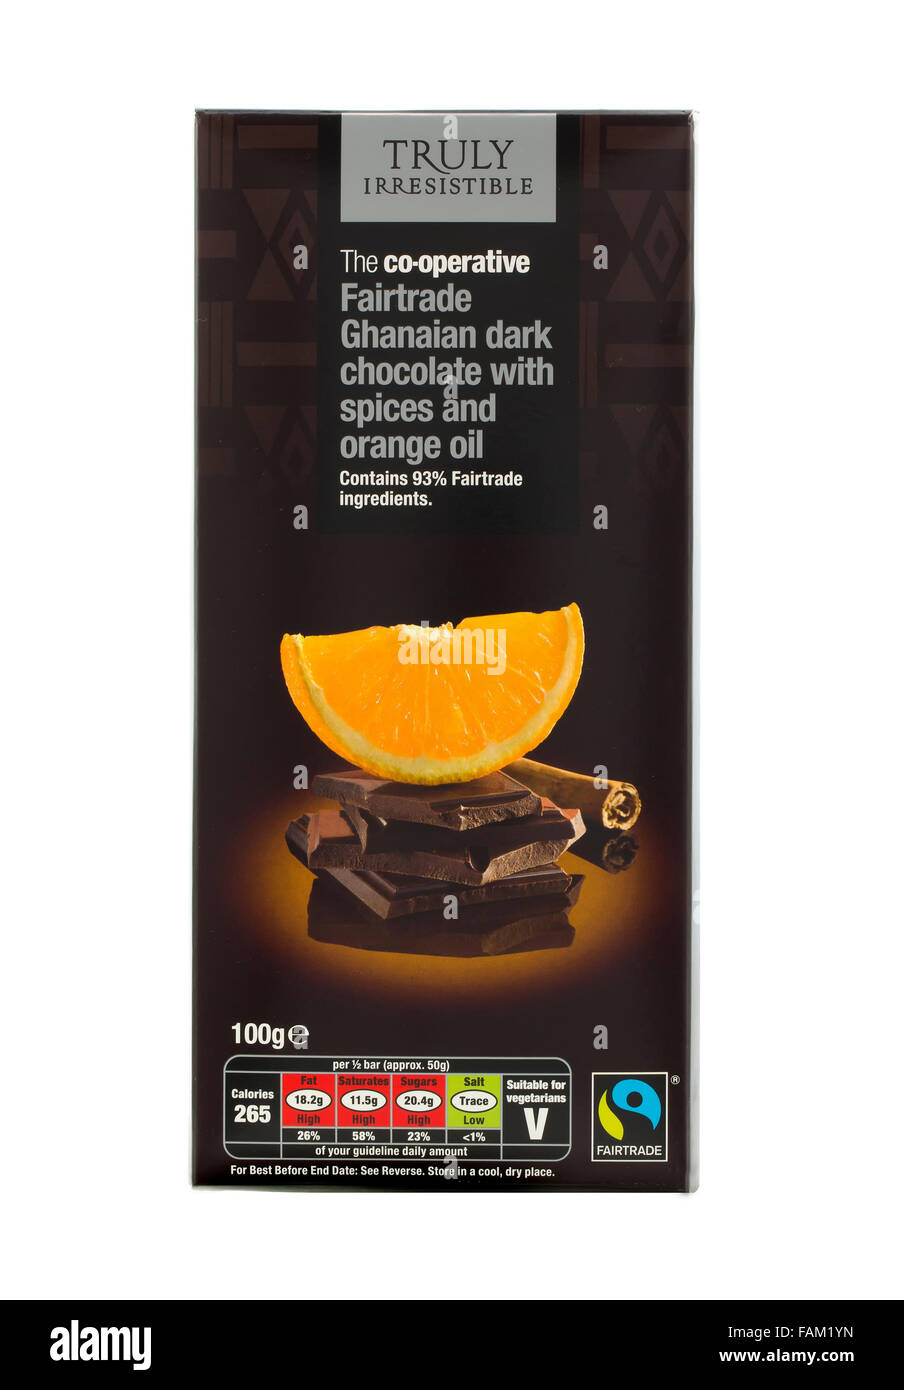 Bar Of Co-Operative Fairtrade Ghanaian Dark Chocolate with Orange Oil and Spices - Stock Image